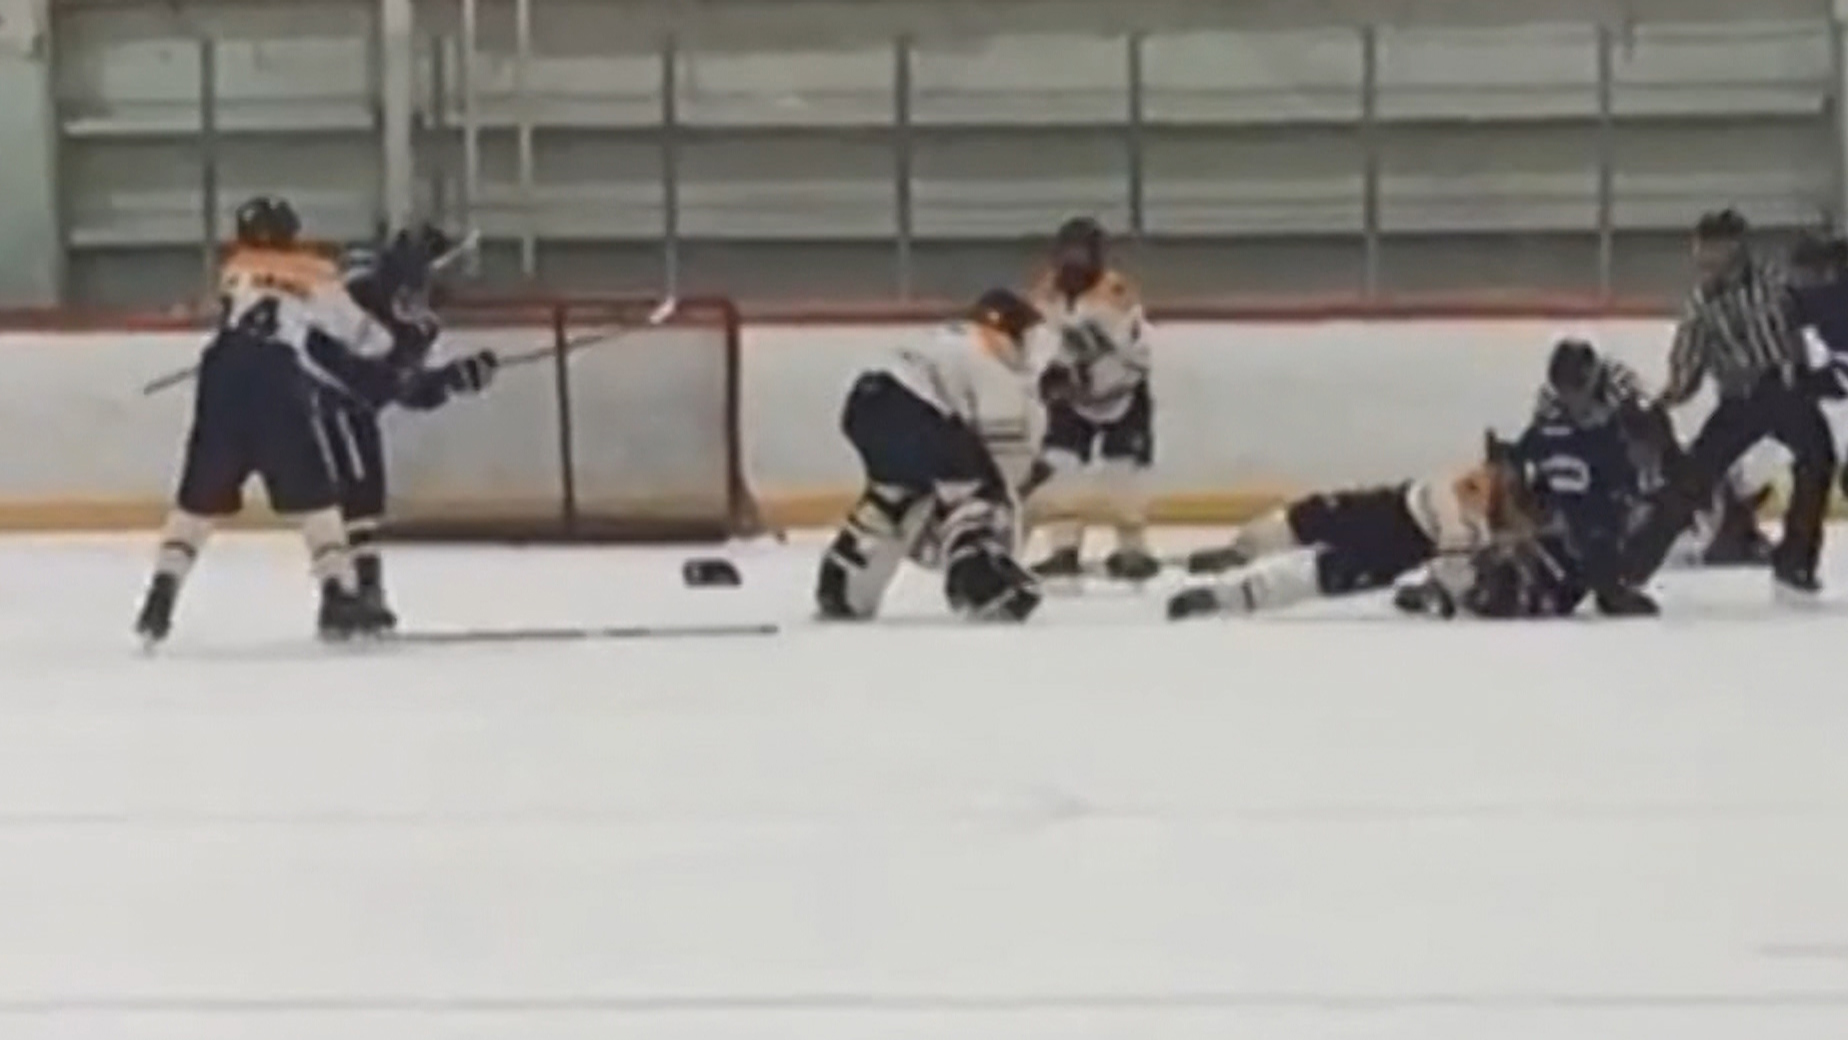 Video Shows On Ice Brawl Between Teens At Bantam Hockey Game In